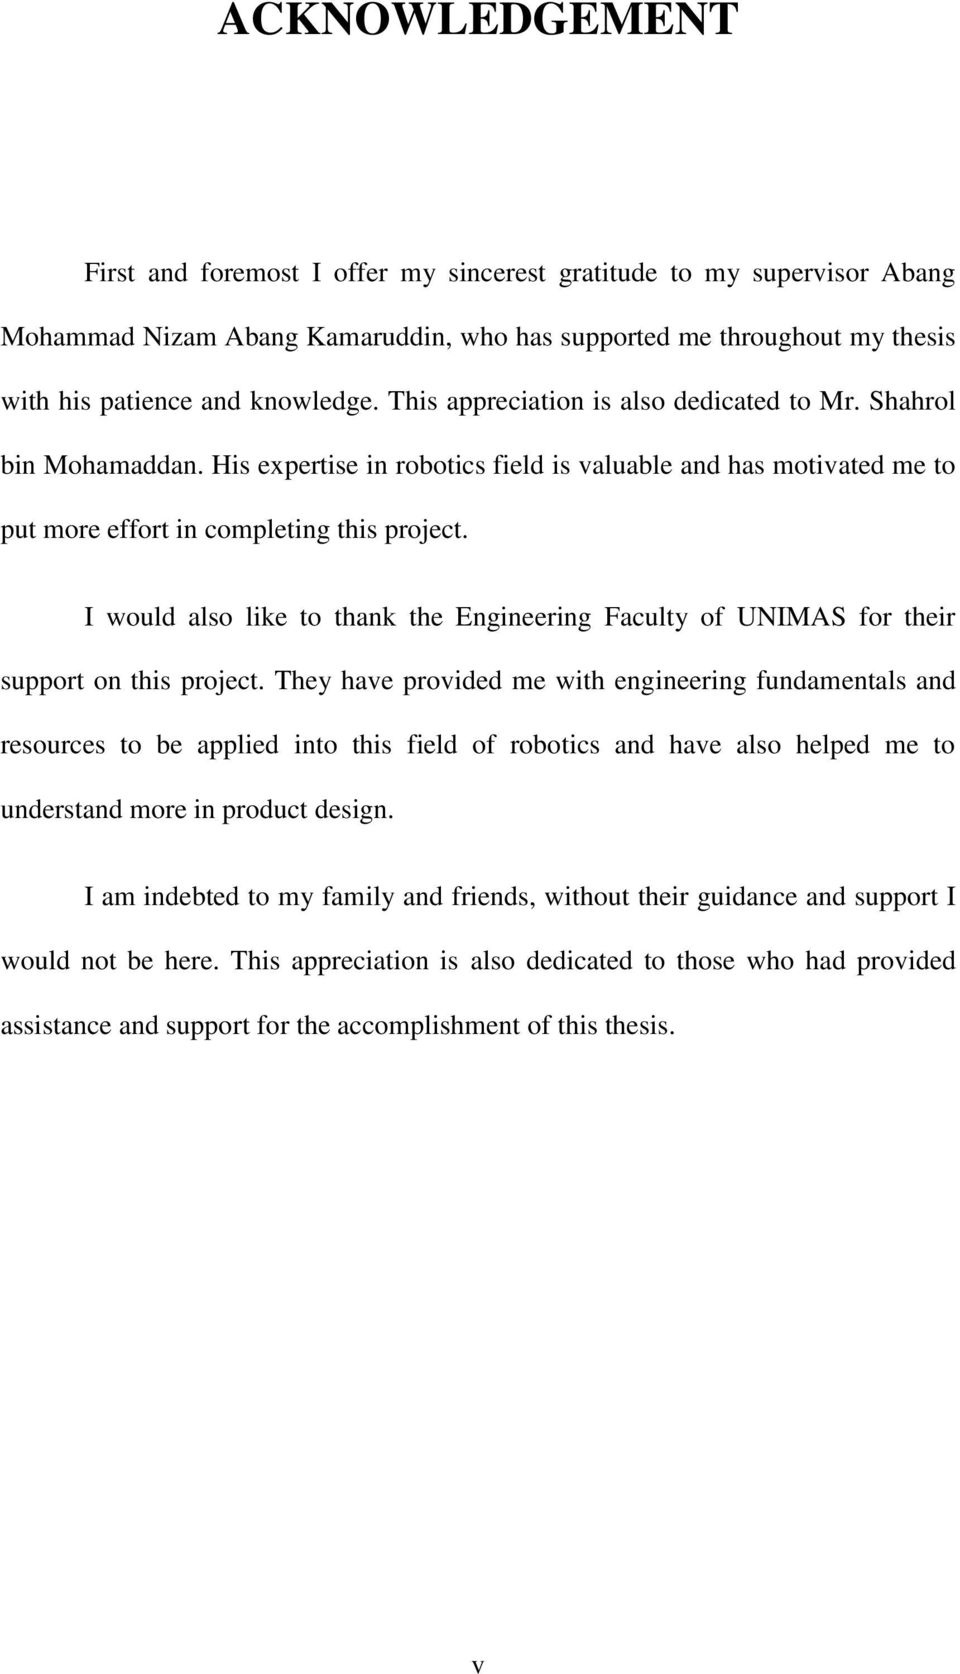 I would also like to thank the Engineering Faculty of UNIMAS for their support on this project.